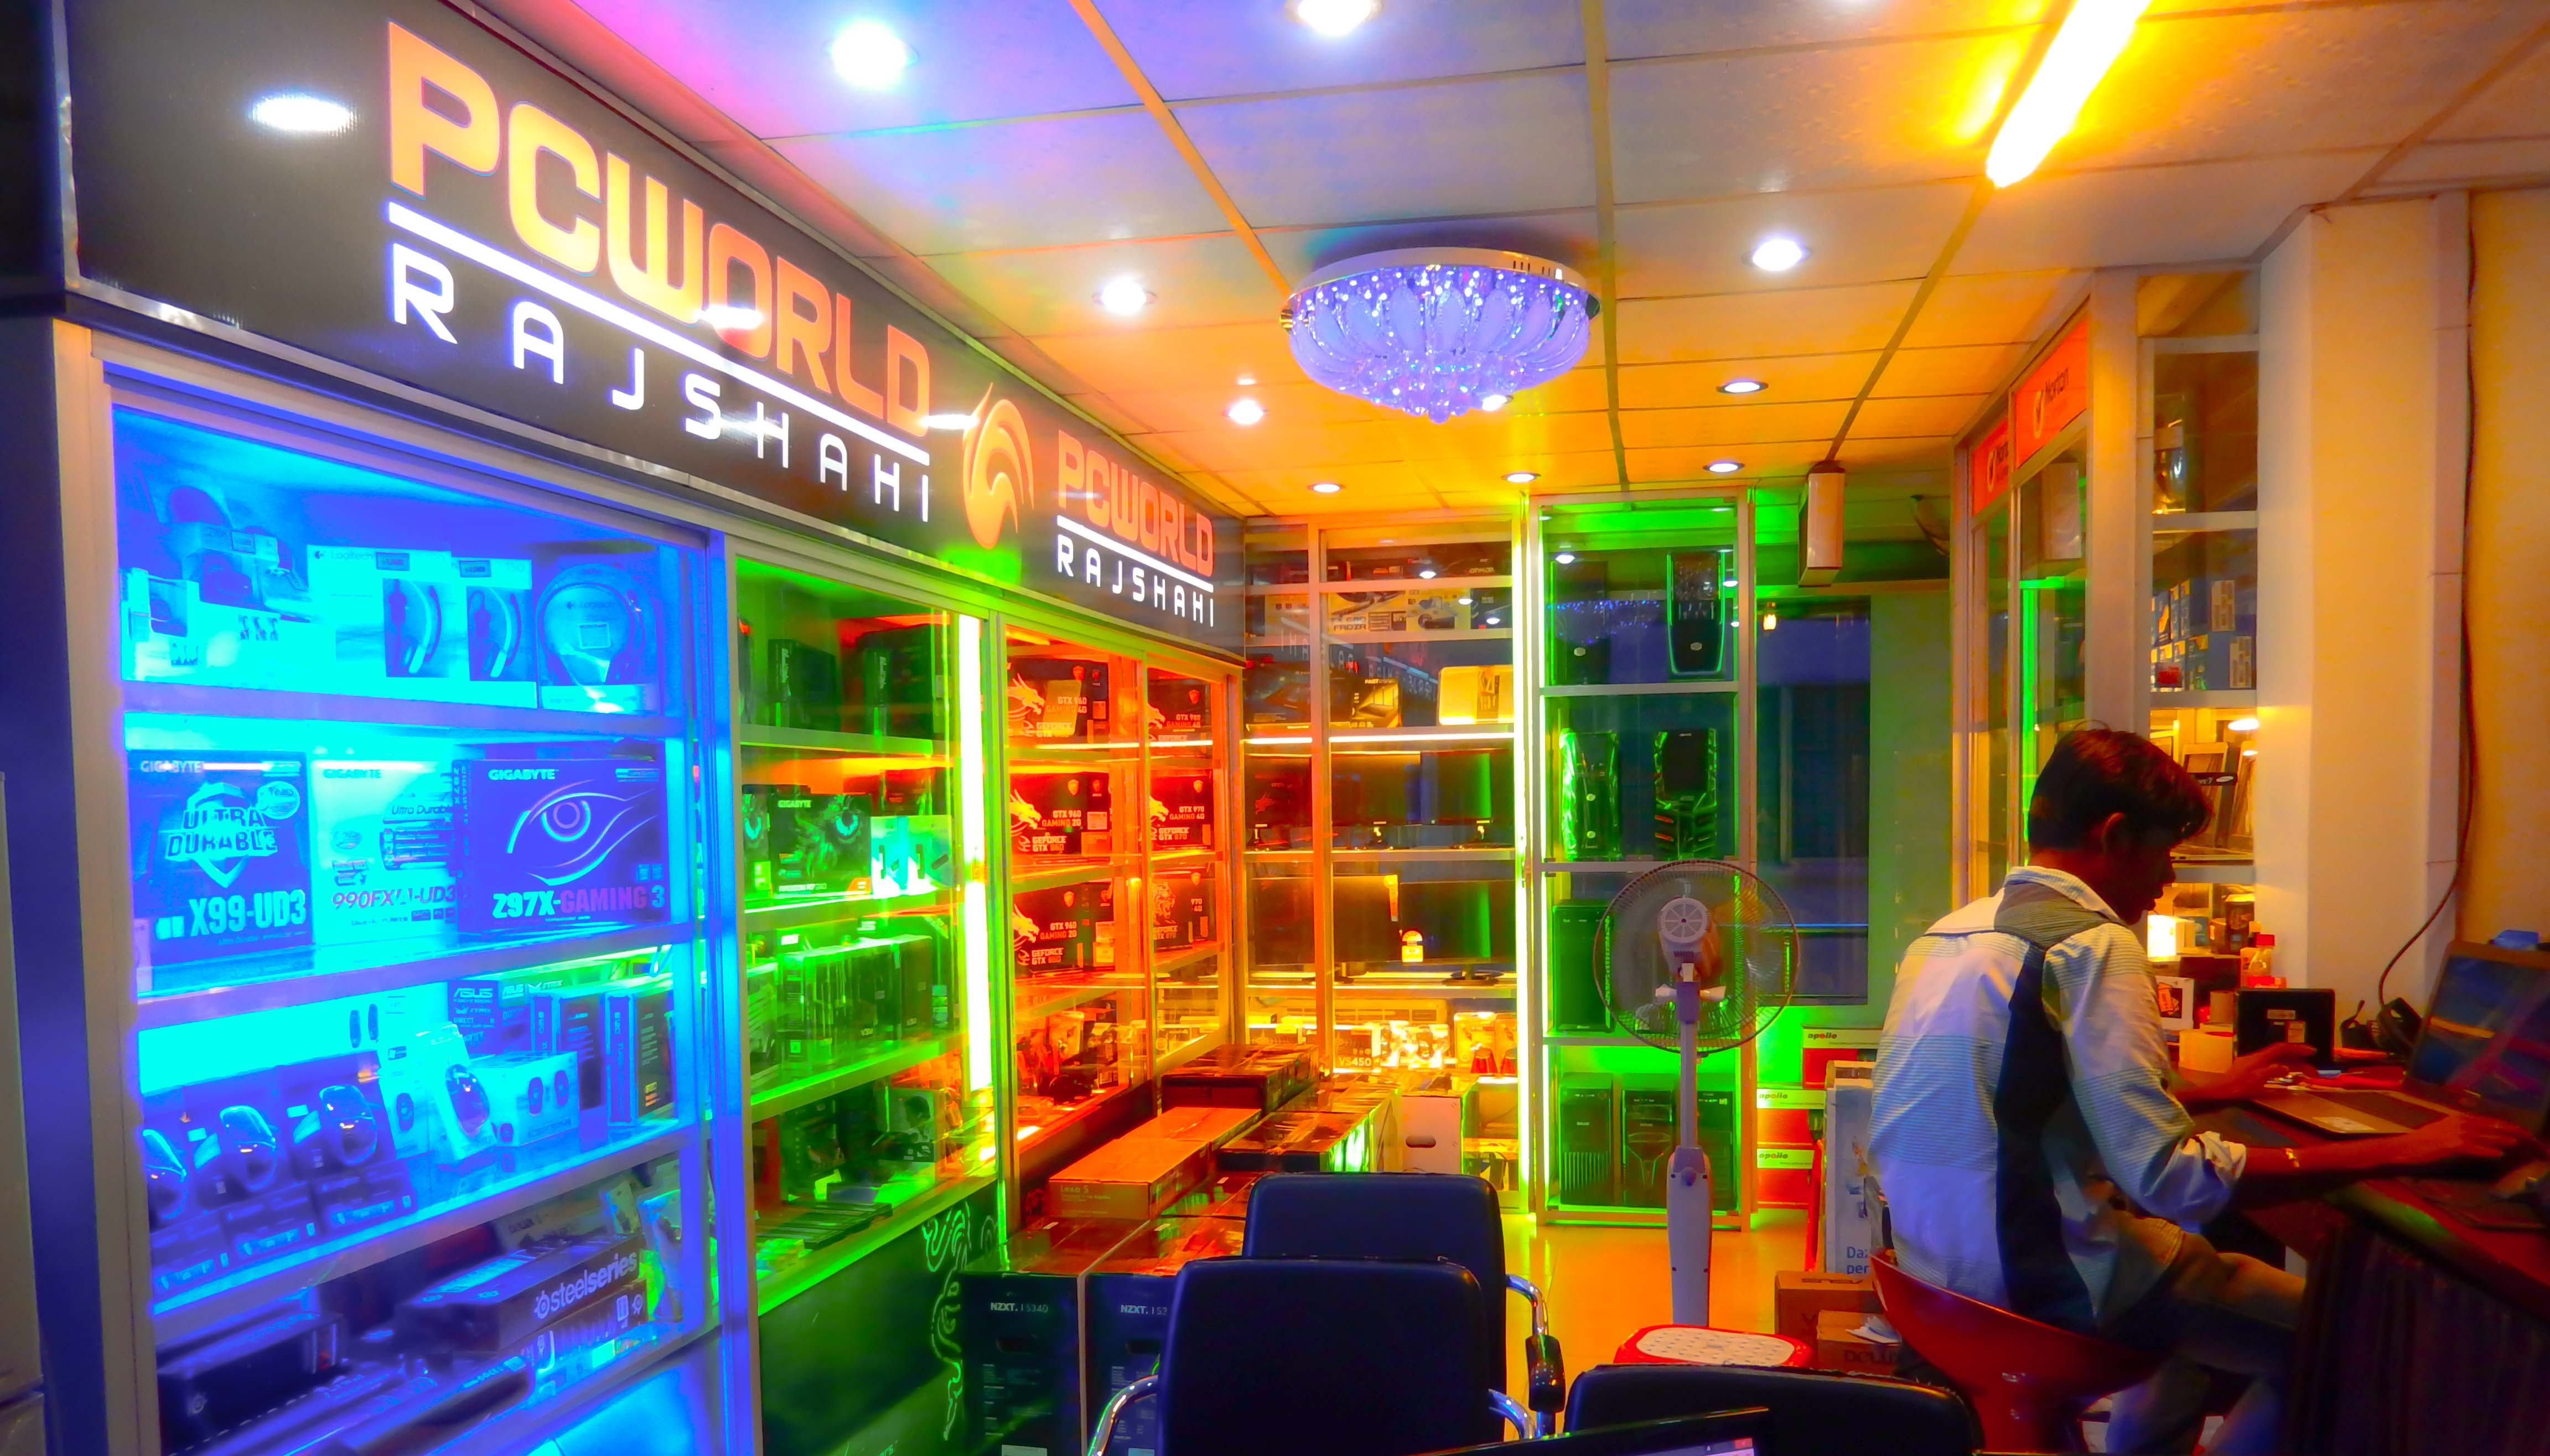 PC World Rajshahi Showroom